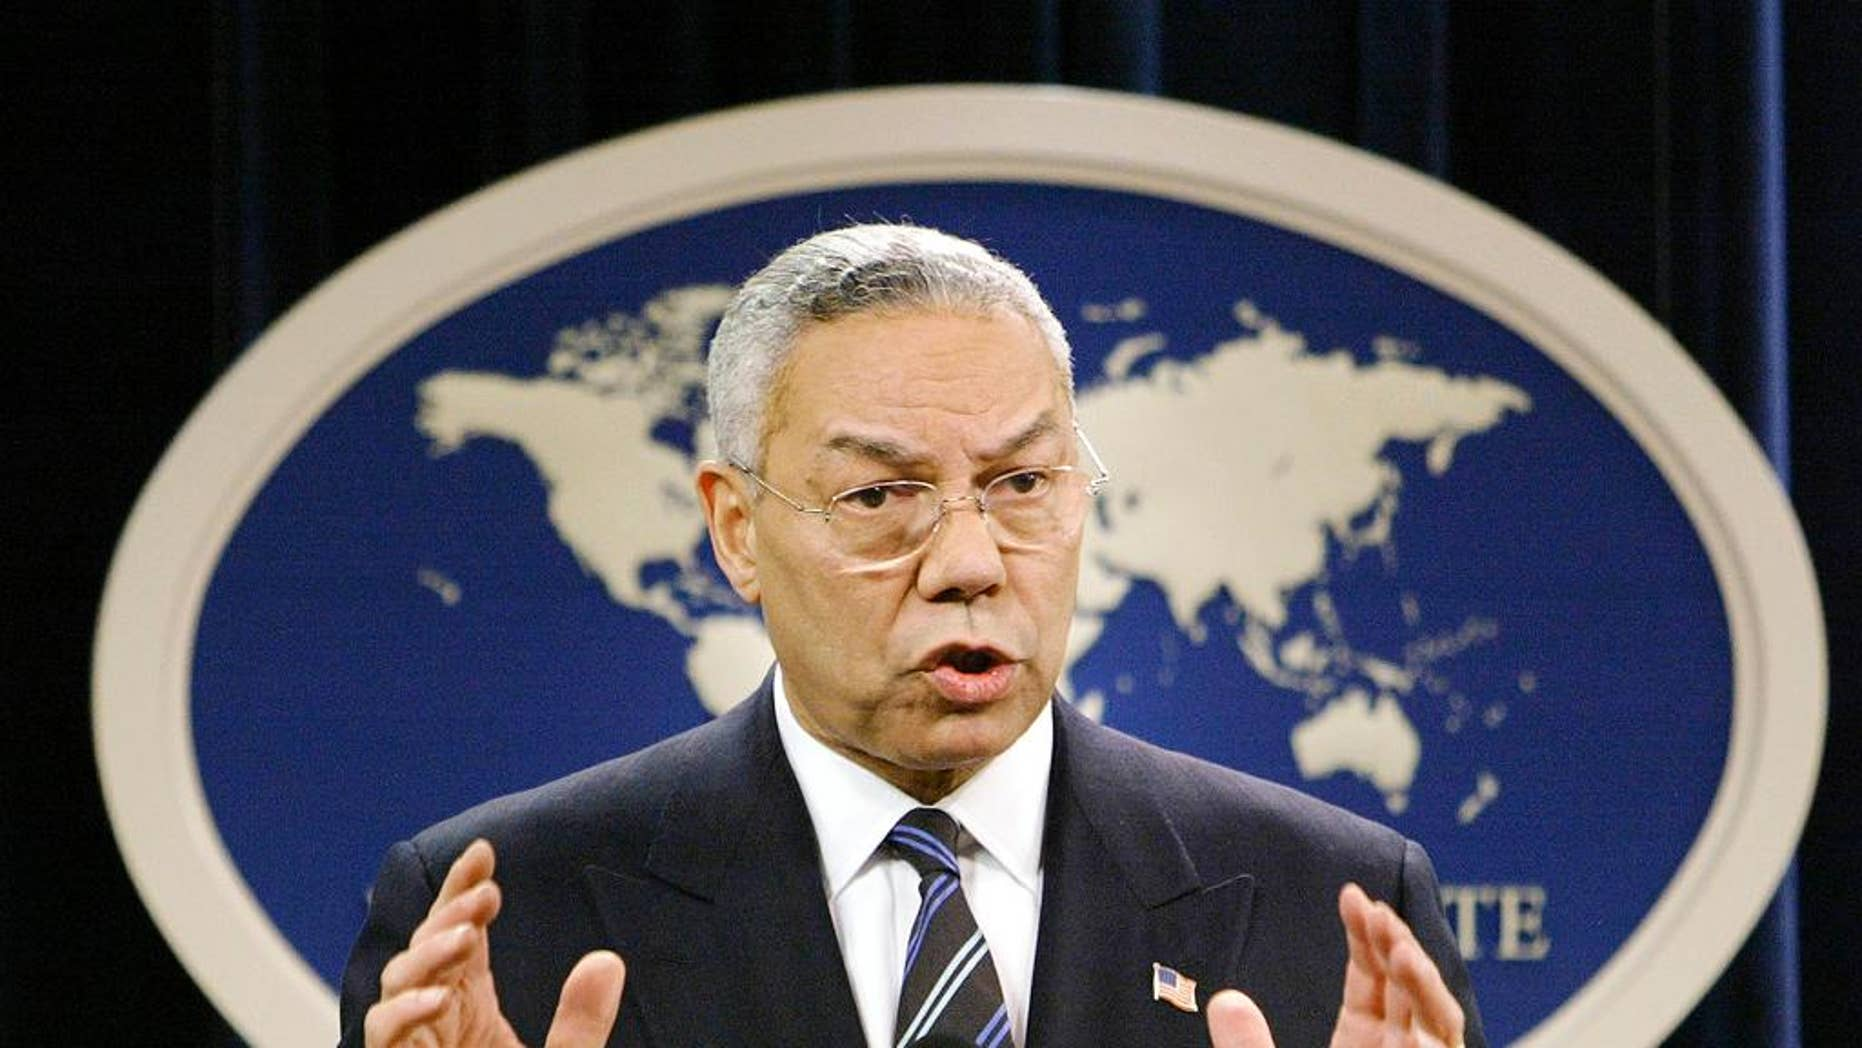 FILE - In this Jan. 8, 2004, file photo, then-Secretary of State Colin Powell speaks at a news conference in Washington at the State Department. A document circulating among White House staff says a Senate report on the CIA's interrogation and detention practices after the 9/11 attacks concludes that the agency initially kept Powell and some U.S. ambassadors in the dark about harsh techniques and secret prisons. (AP Photo/J. Scott Applewhite, File)